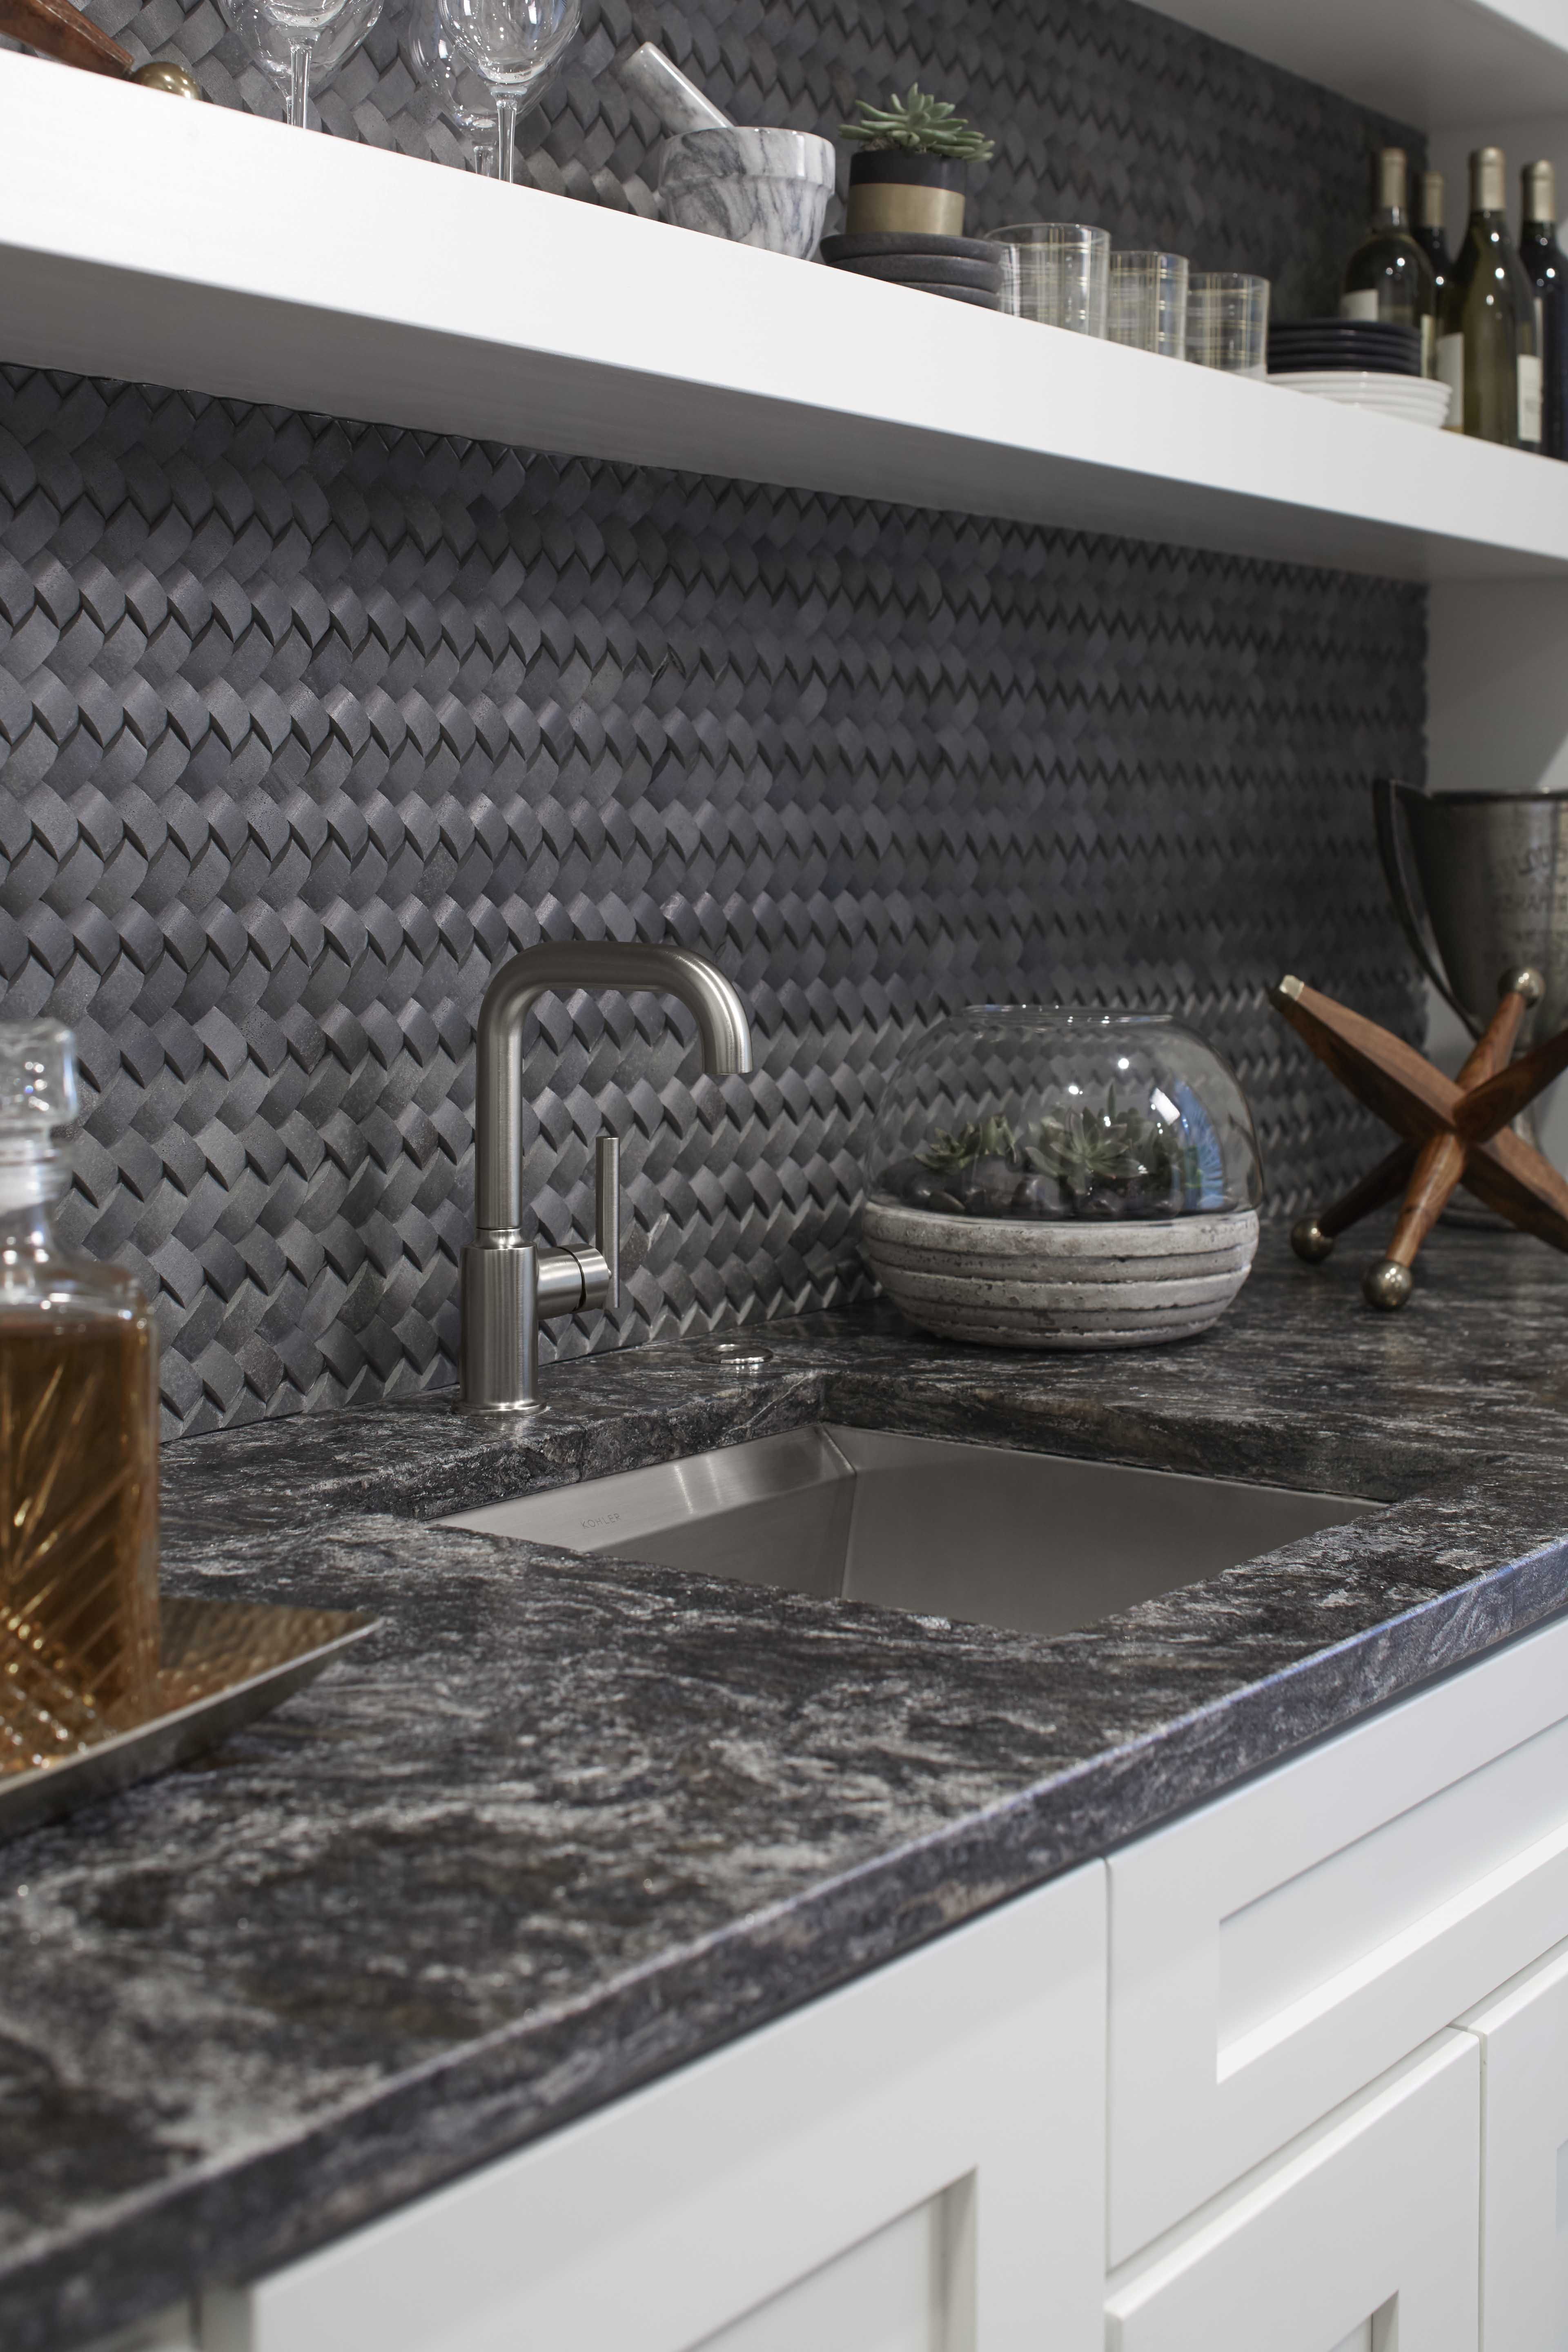 8 Degree Bar Sink     Purist Kitchen Faucet     The sculptural profile of a modern faucet stands out against the basketweave backsplash like a jewel against velvet.